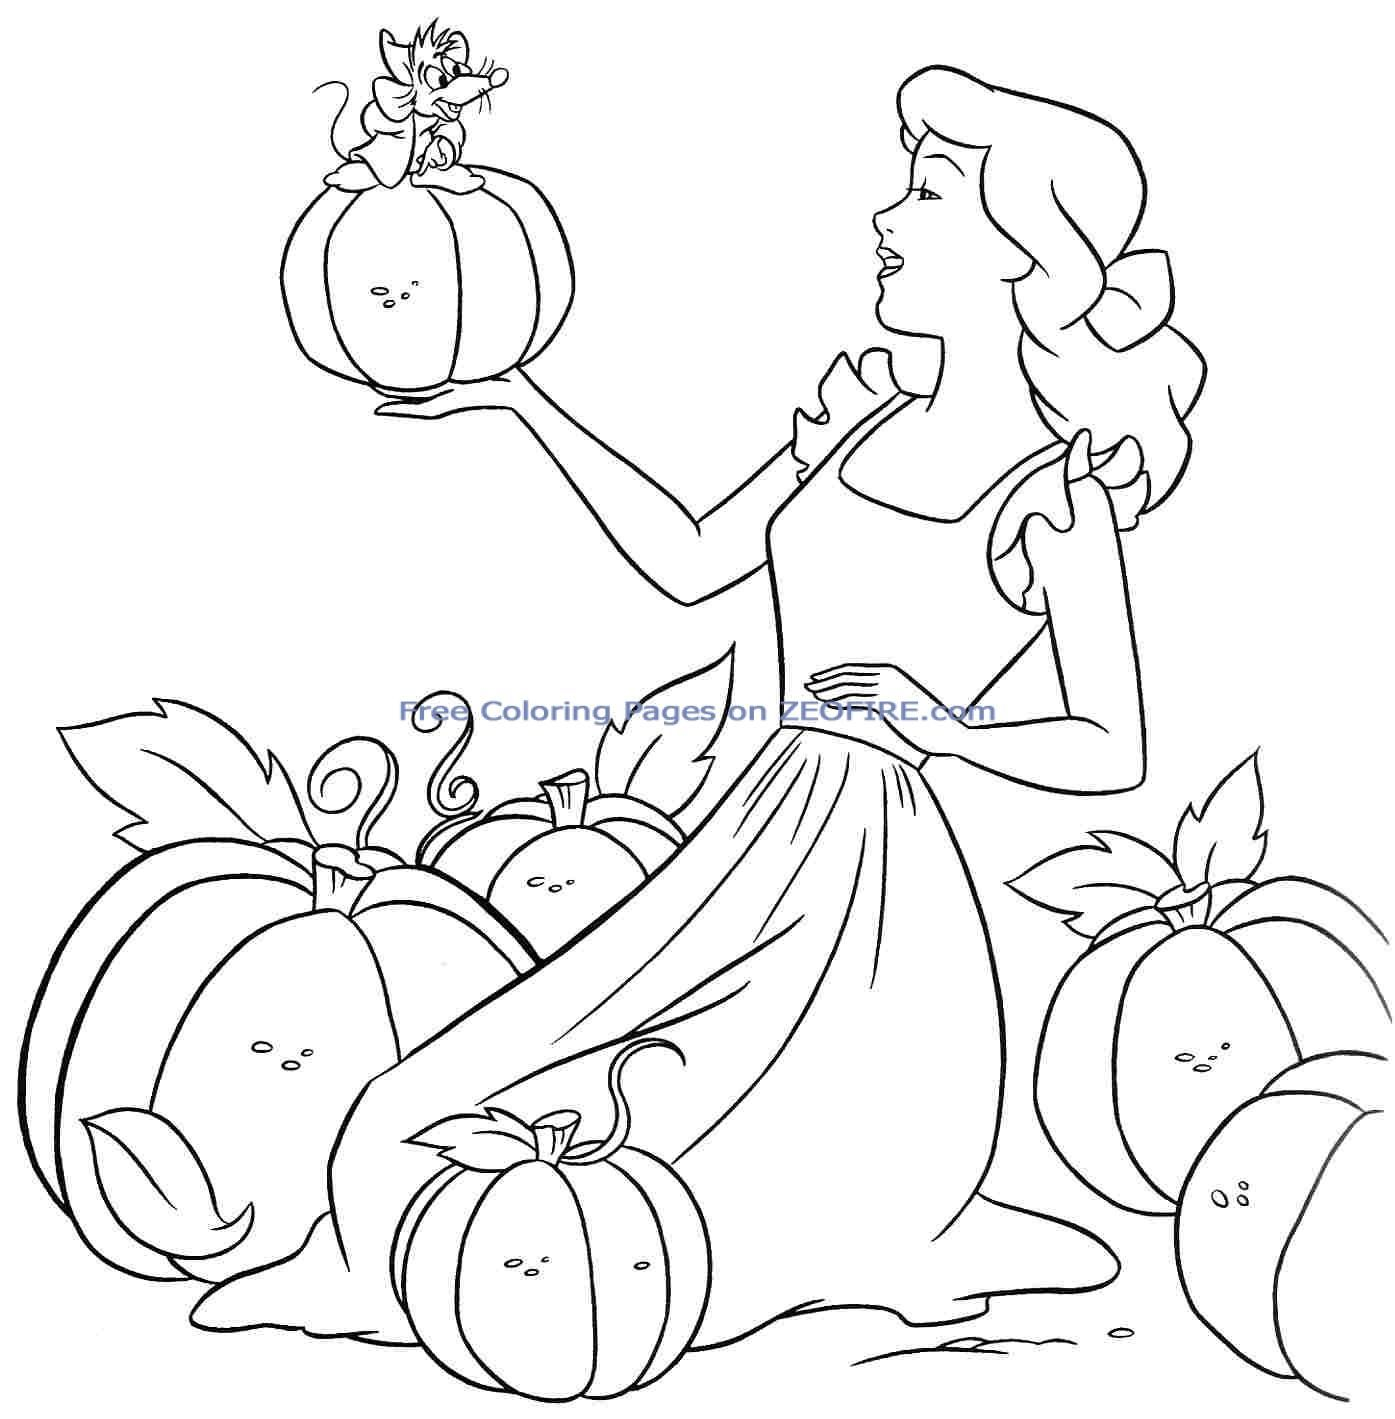 Disney Cinderella Coloring Page Coloring Pages Disney Coloring